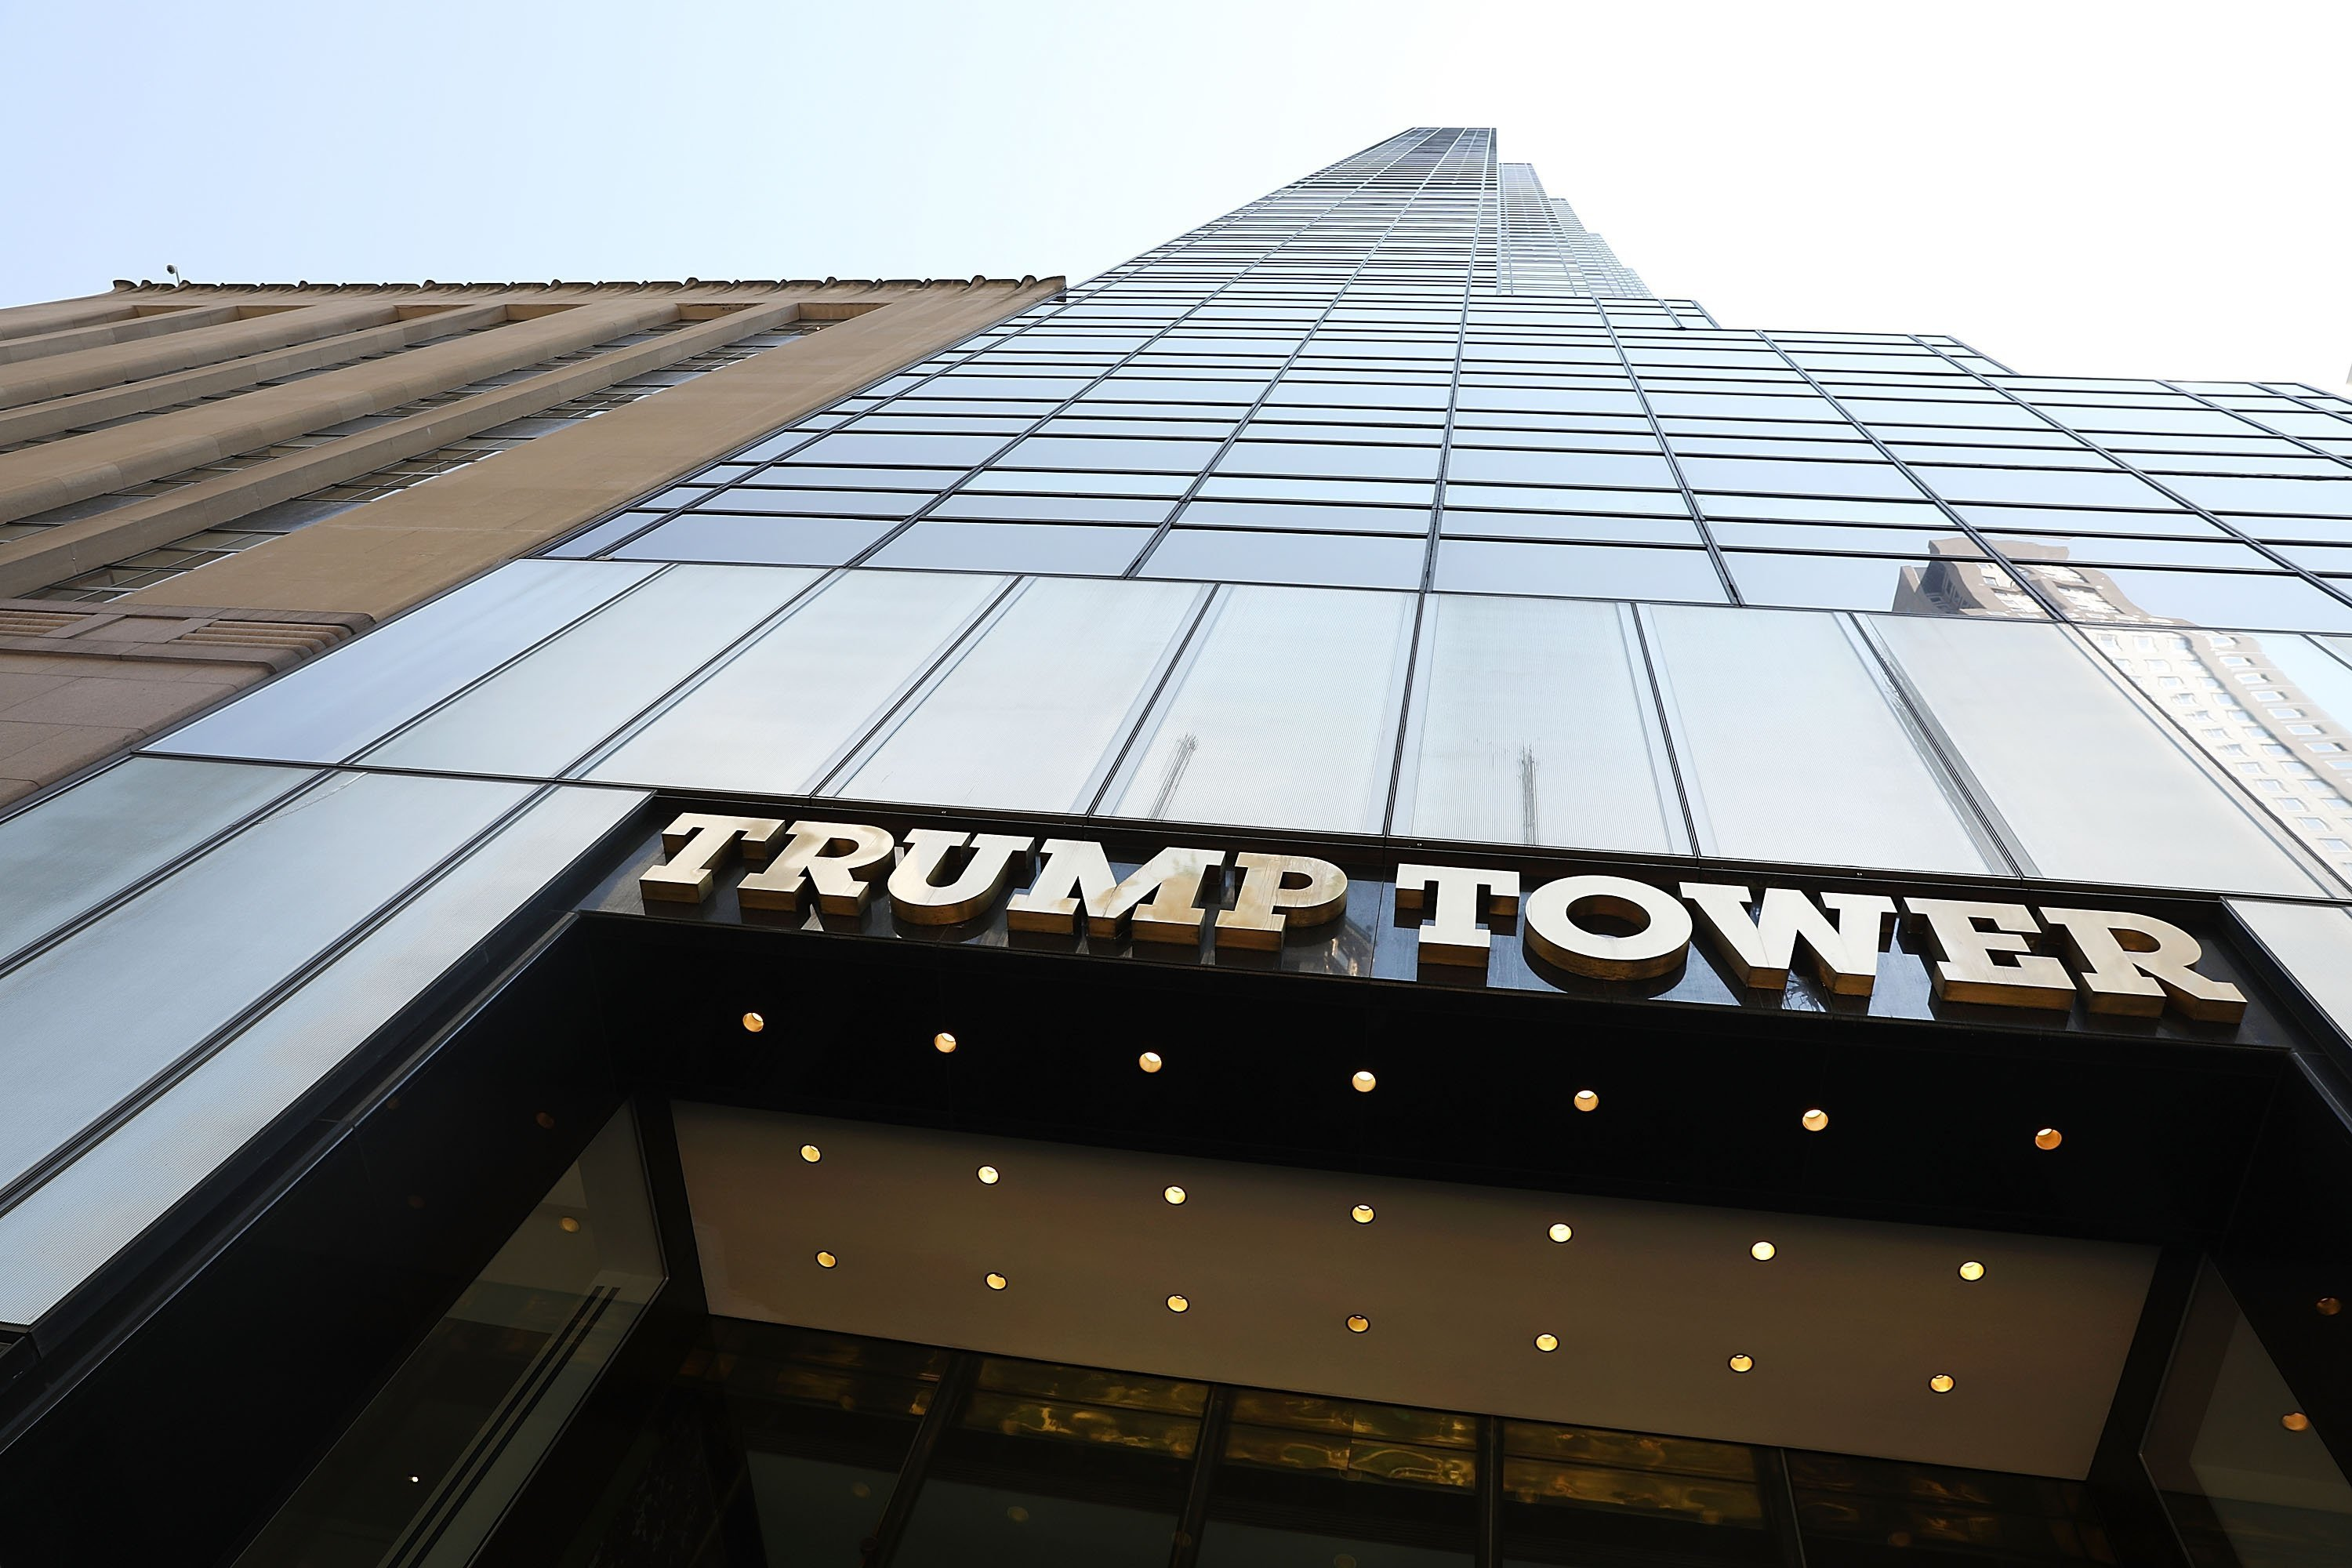 Seven things we learned from the Trump Tower transcripts